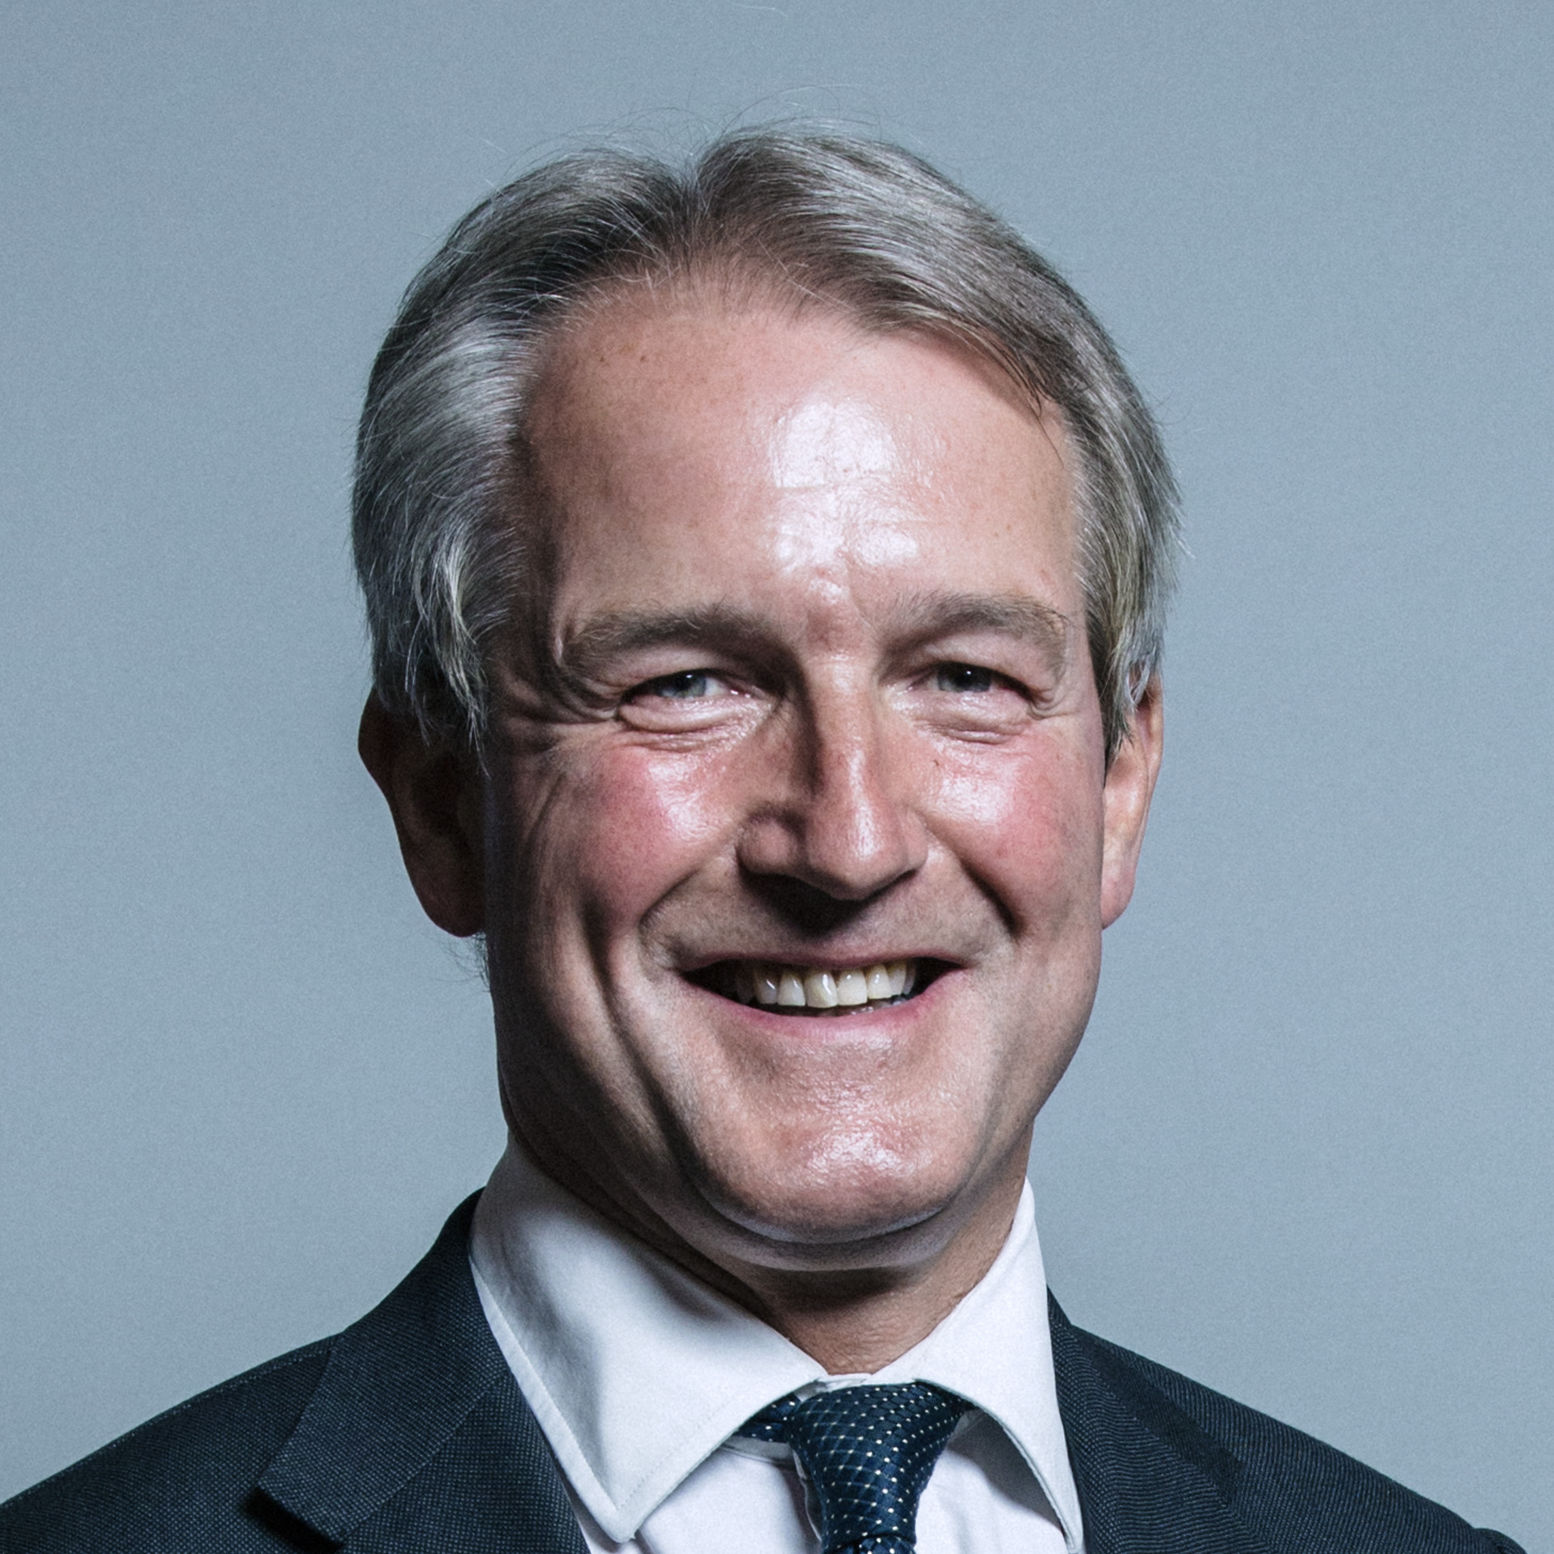 Mr Owen Paterson Portrait